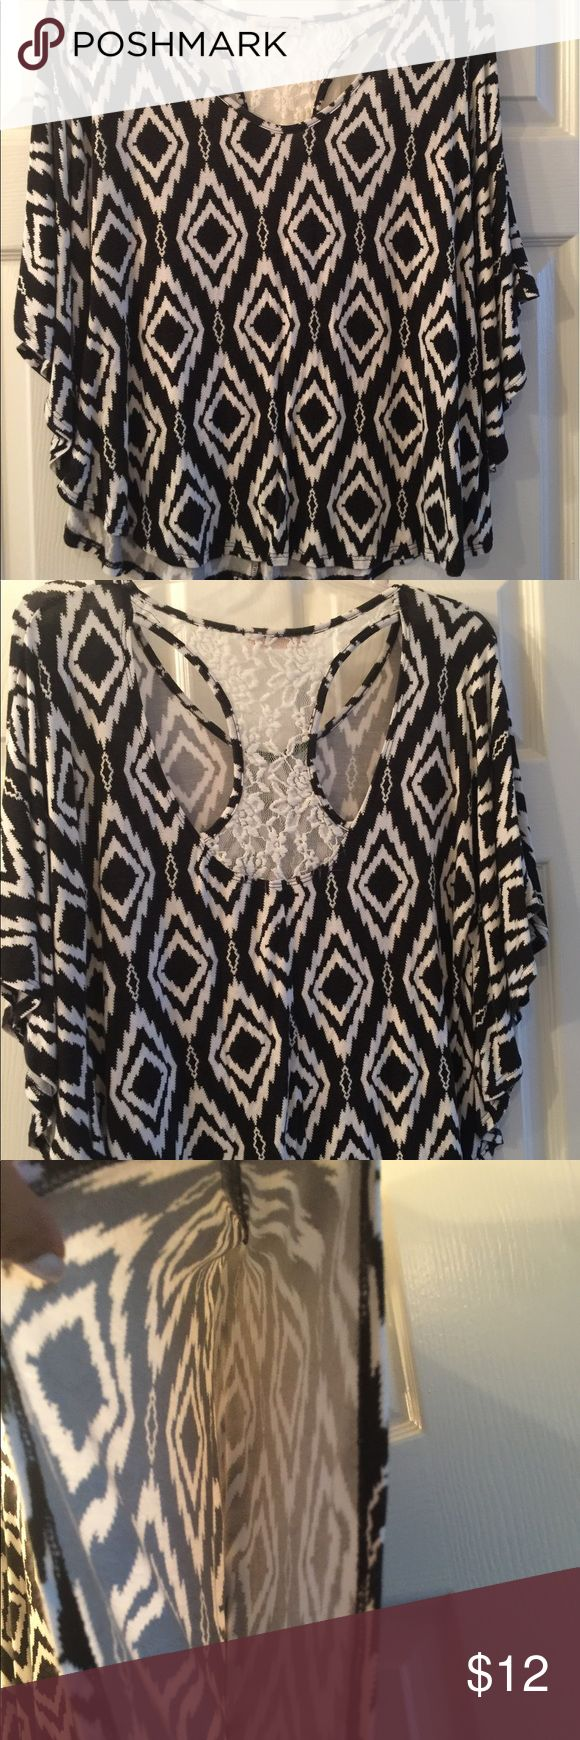 Dolman top or batwing sleeves for a top Black and white dolman top or batwing sleeves. Very cute and flirty top Tops